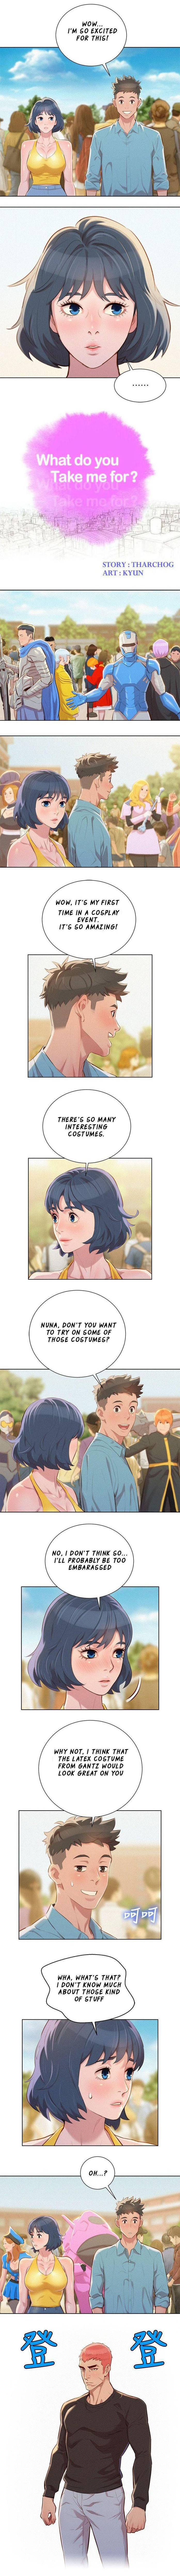 What do you Take me For? Ch.40/? 384